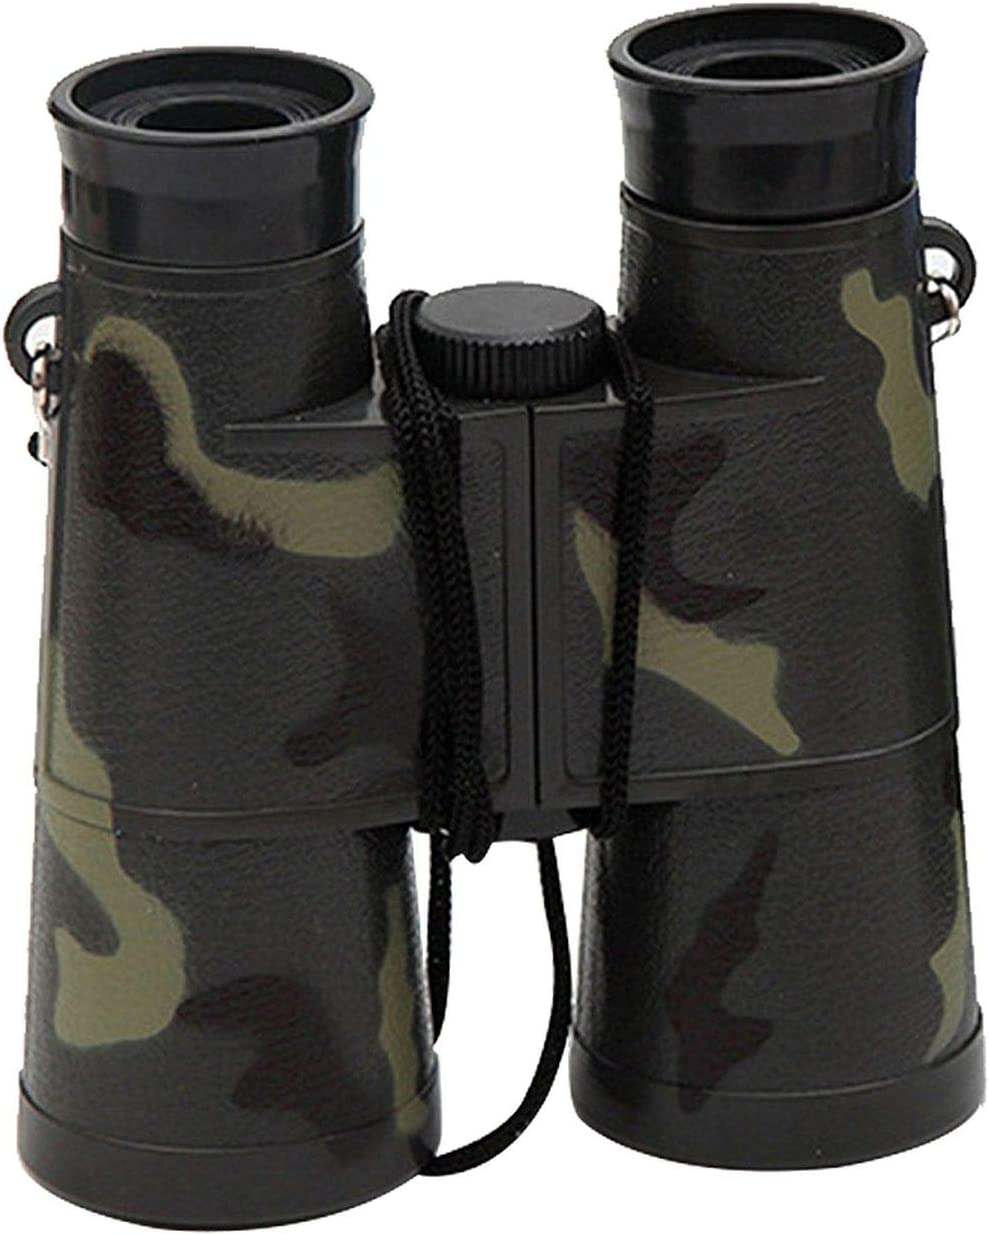 Child Kids Toys Camouflage Military Telescope Outdoor Wildlife Scenery Bird Watching Best Gifts for Children